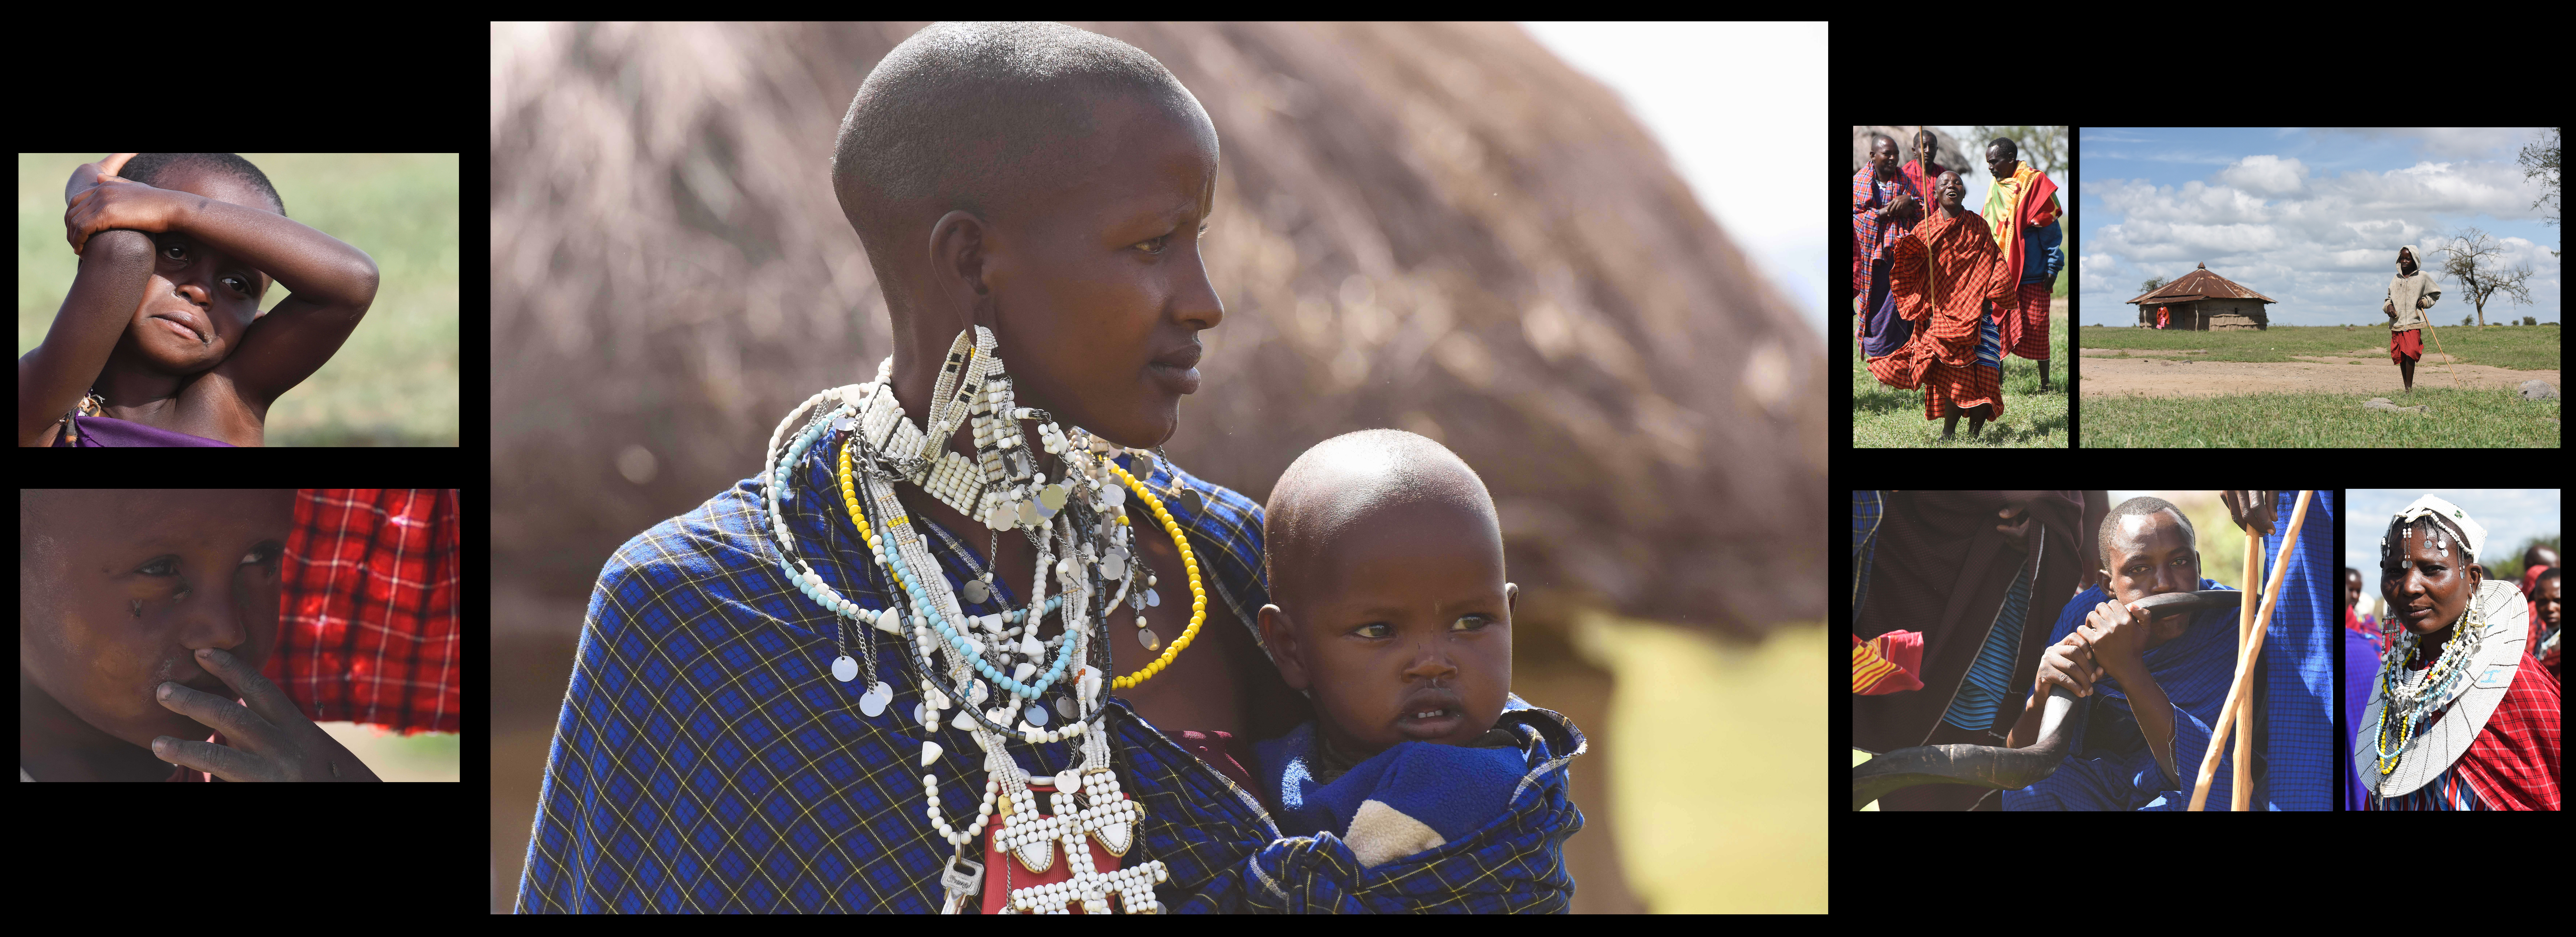 Gender Mainstreaming Seminar attendees visit the Maasai Village during the Gender Mainstreaming Seminar cultural day May 21, 2015 in Tanzania. The Massai tribe is a group of semi-nomadic people inhabiting southern Kenya and northern Tanzania.